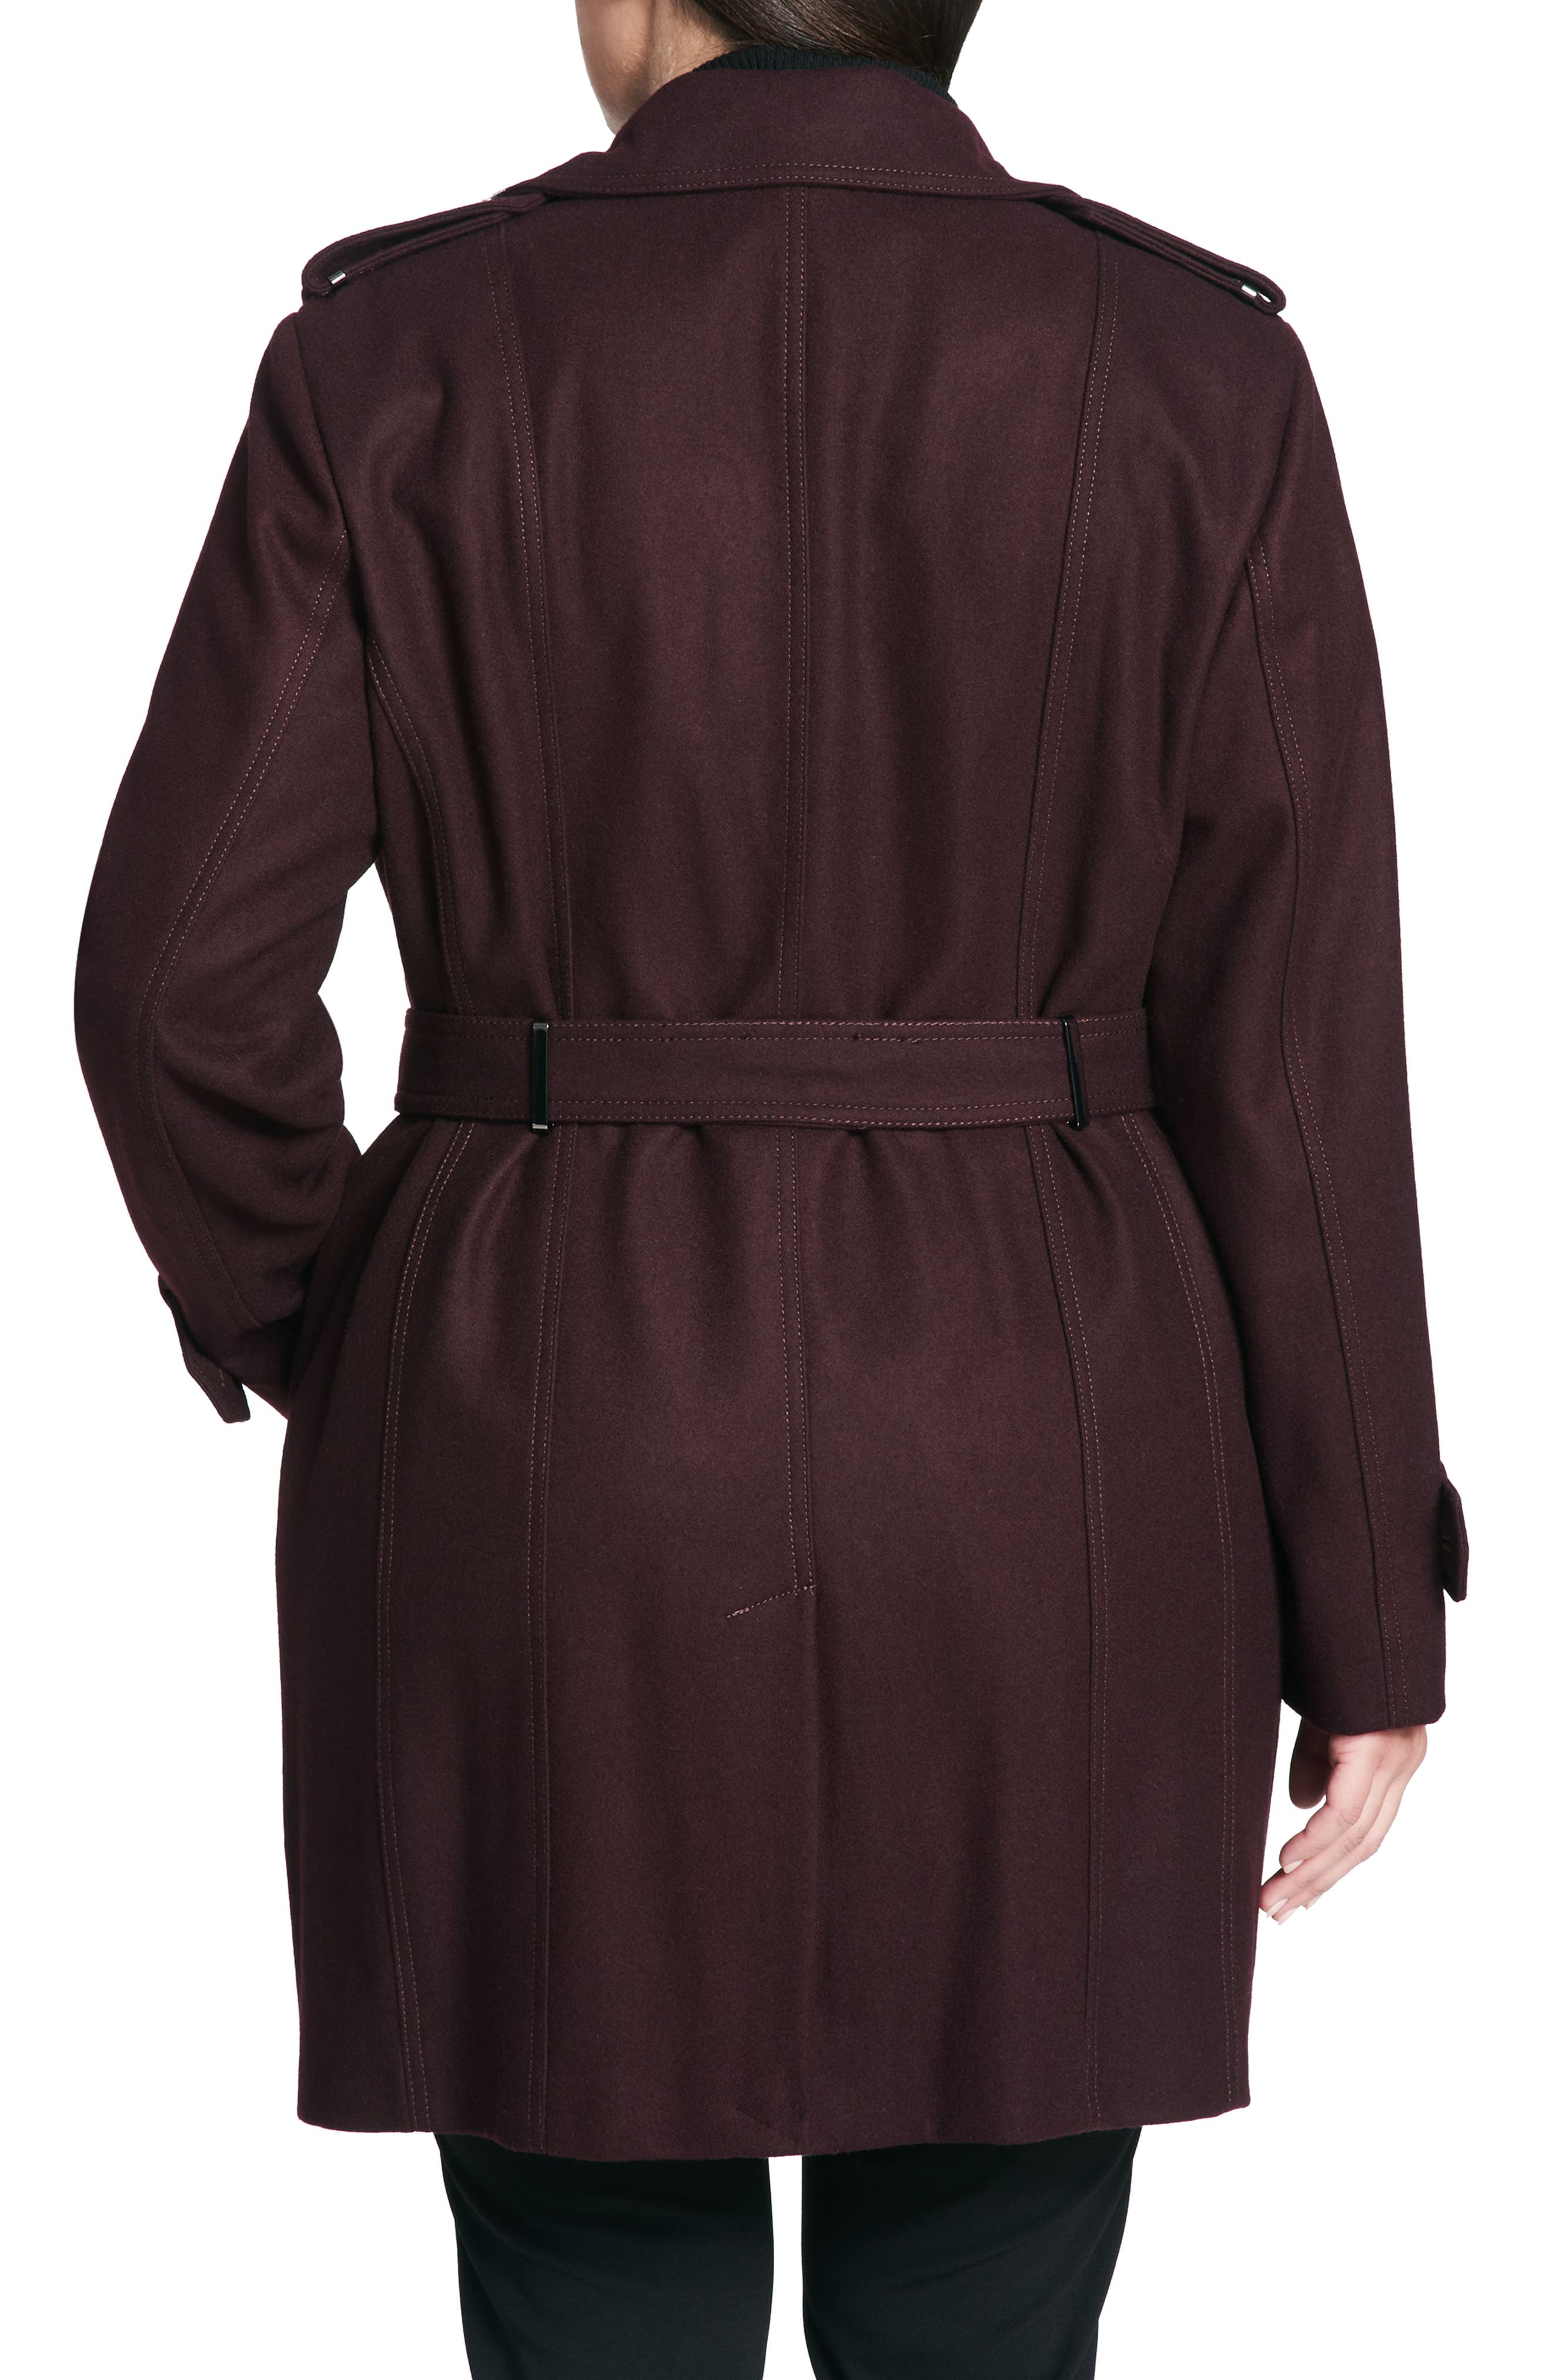 Single Breasted Wool Blend Trench Coat,                             Alternate thumbnail 2, color,                             930